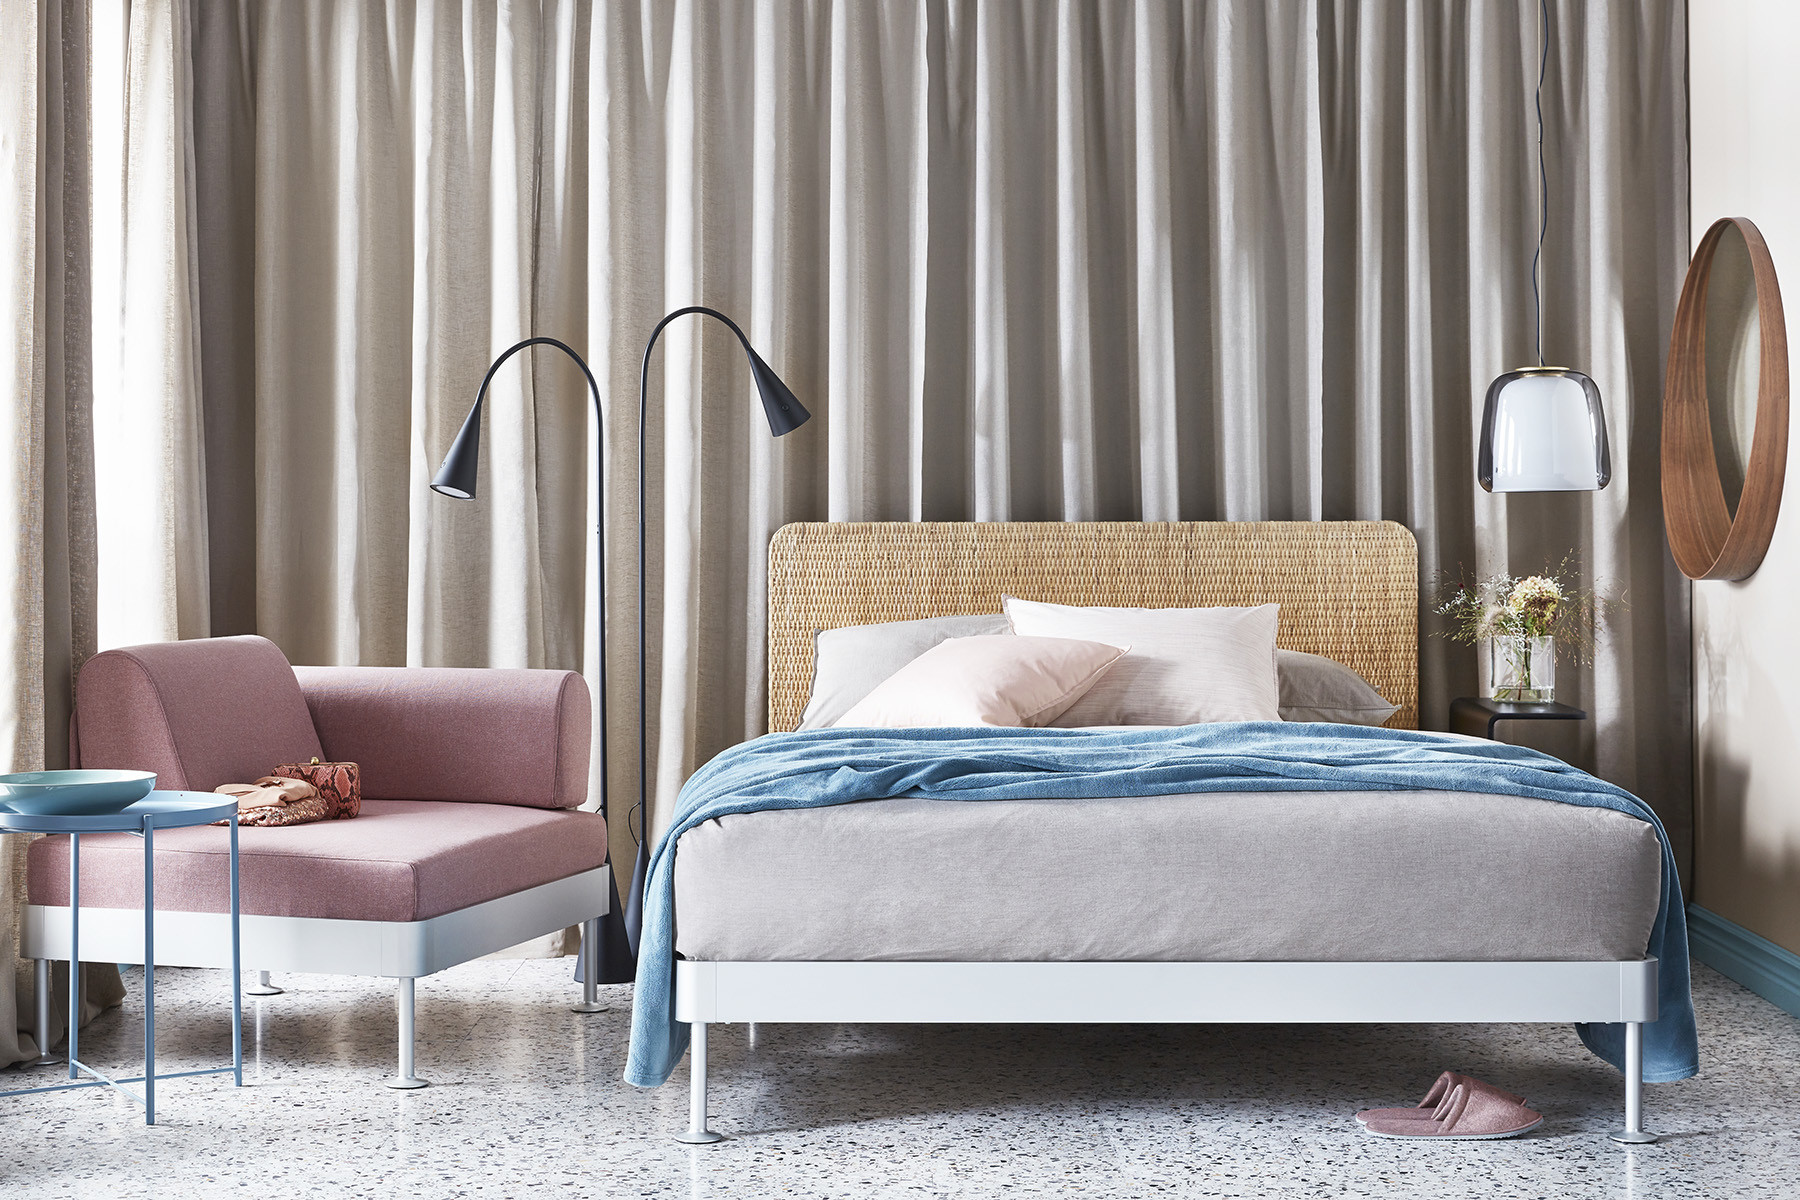 Get This Cool IKEA Headboard Before It Sells Out